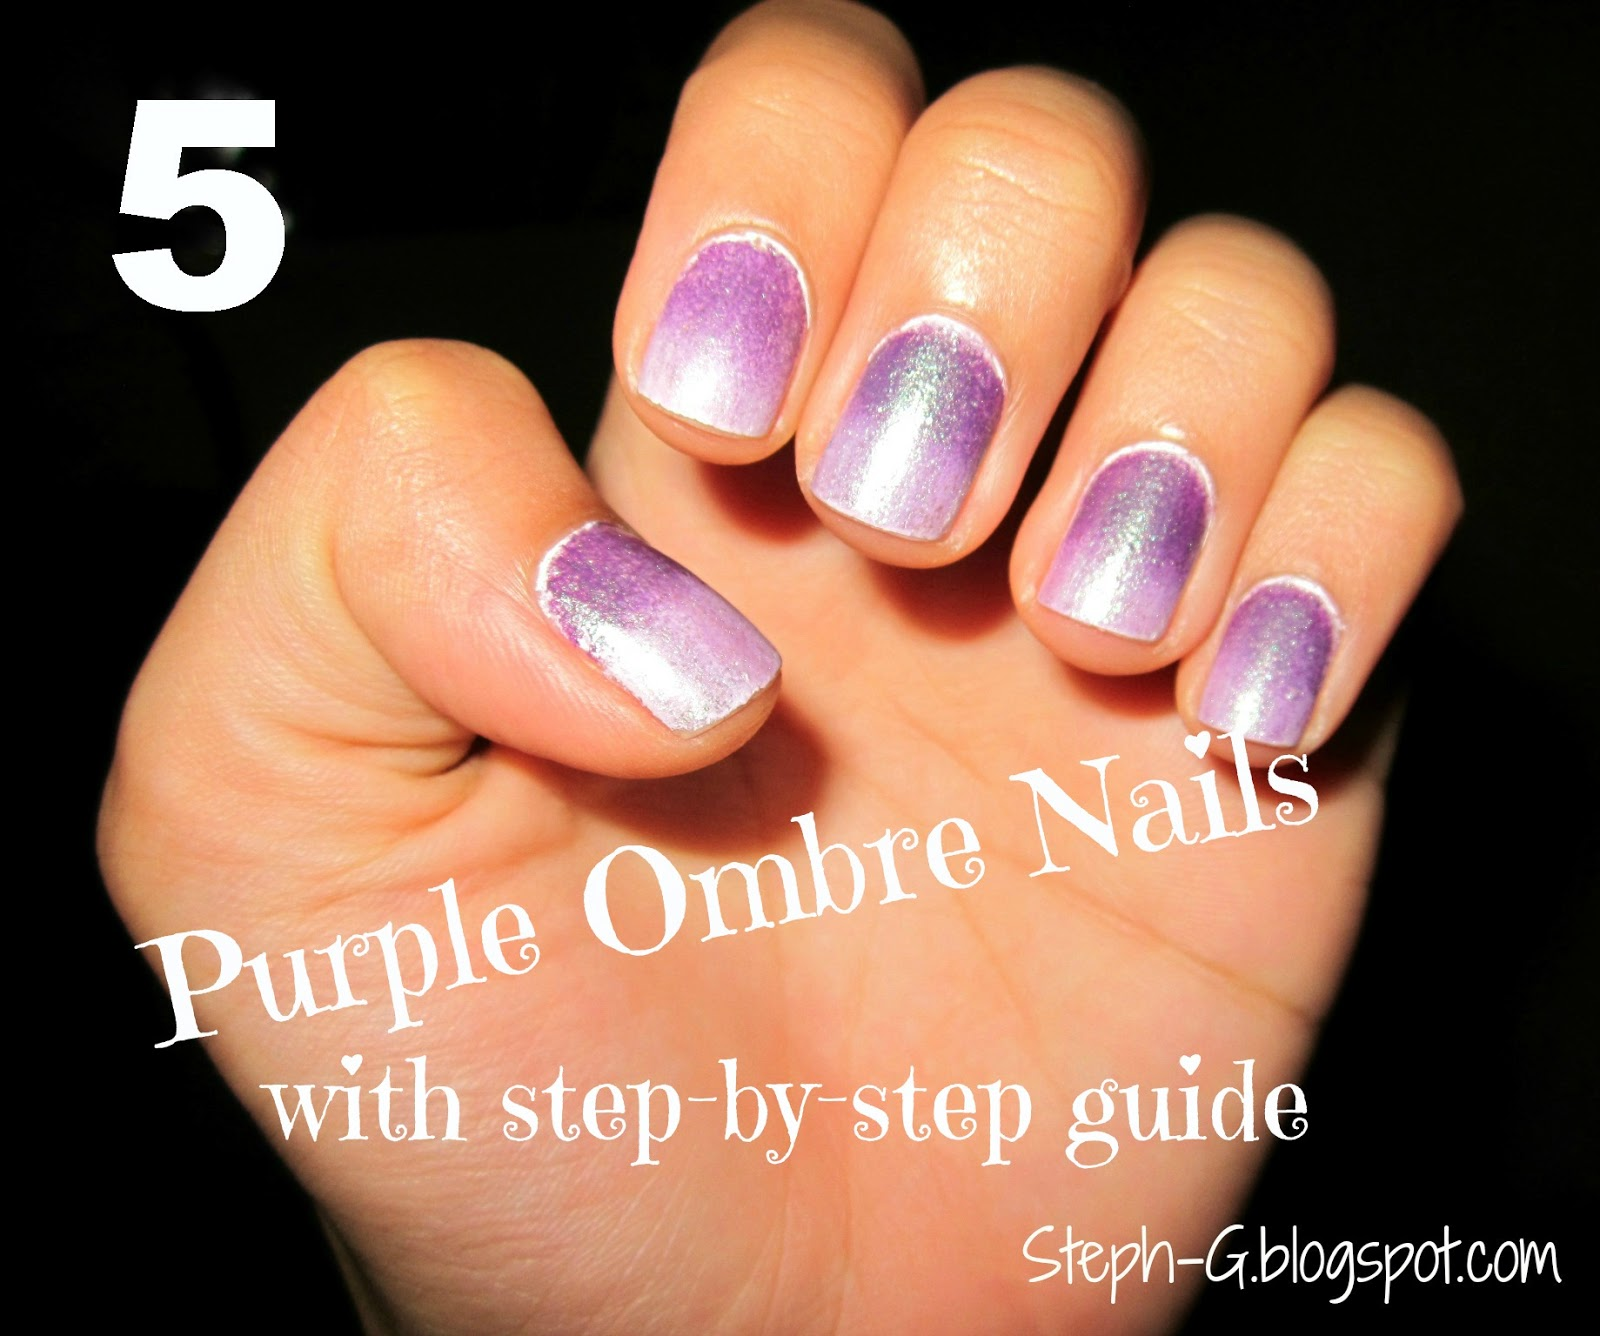 Steph G Nail Polishness Ombre Nail Design With Step Bystep Guide